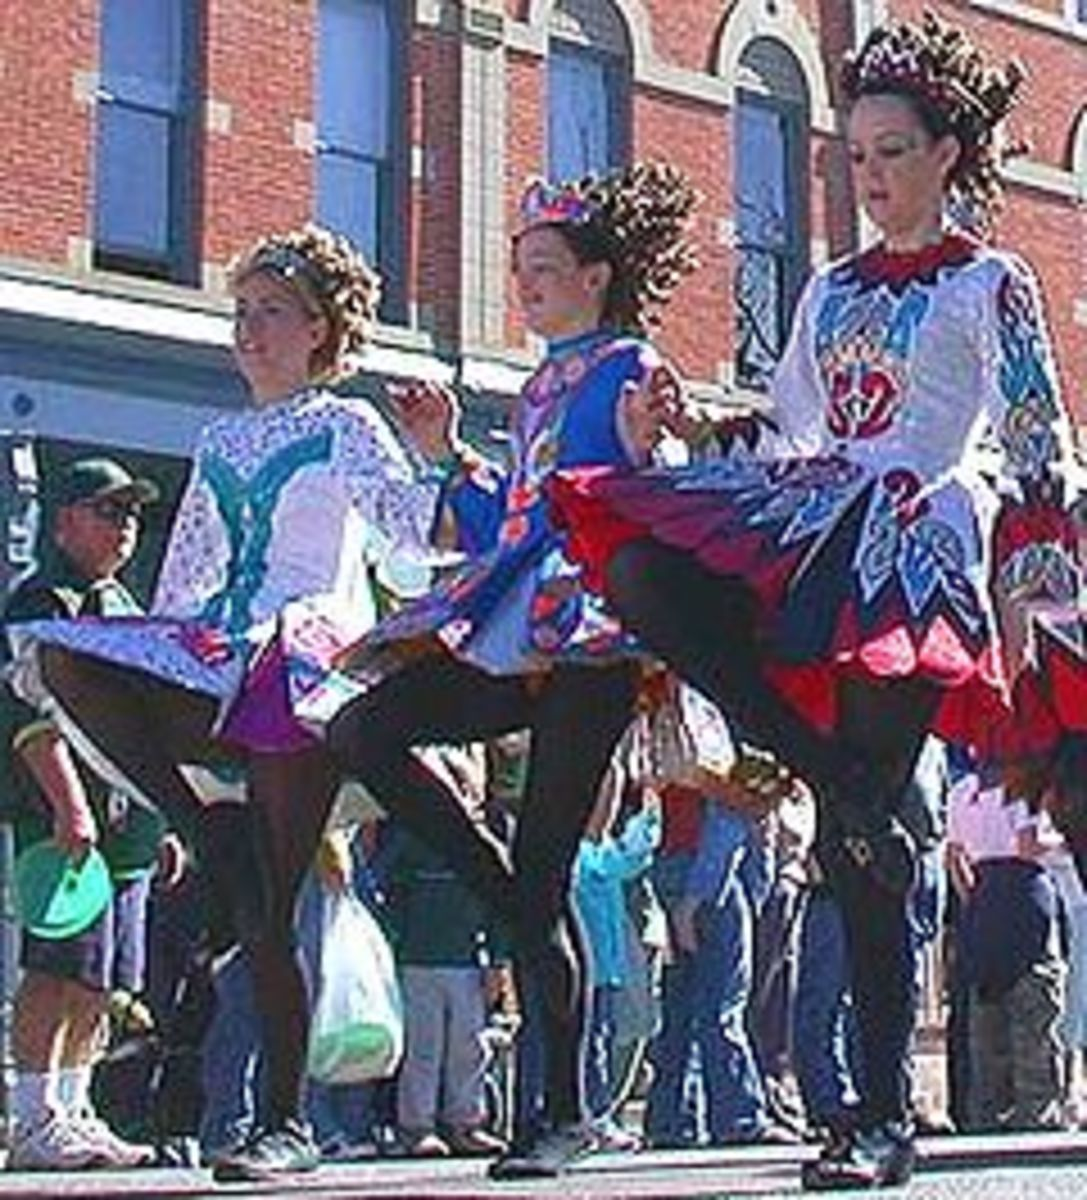 IRISH dancers courtesy of wikipedia -- St Patricks Day